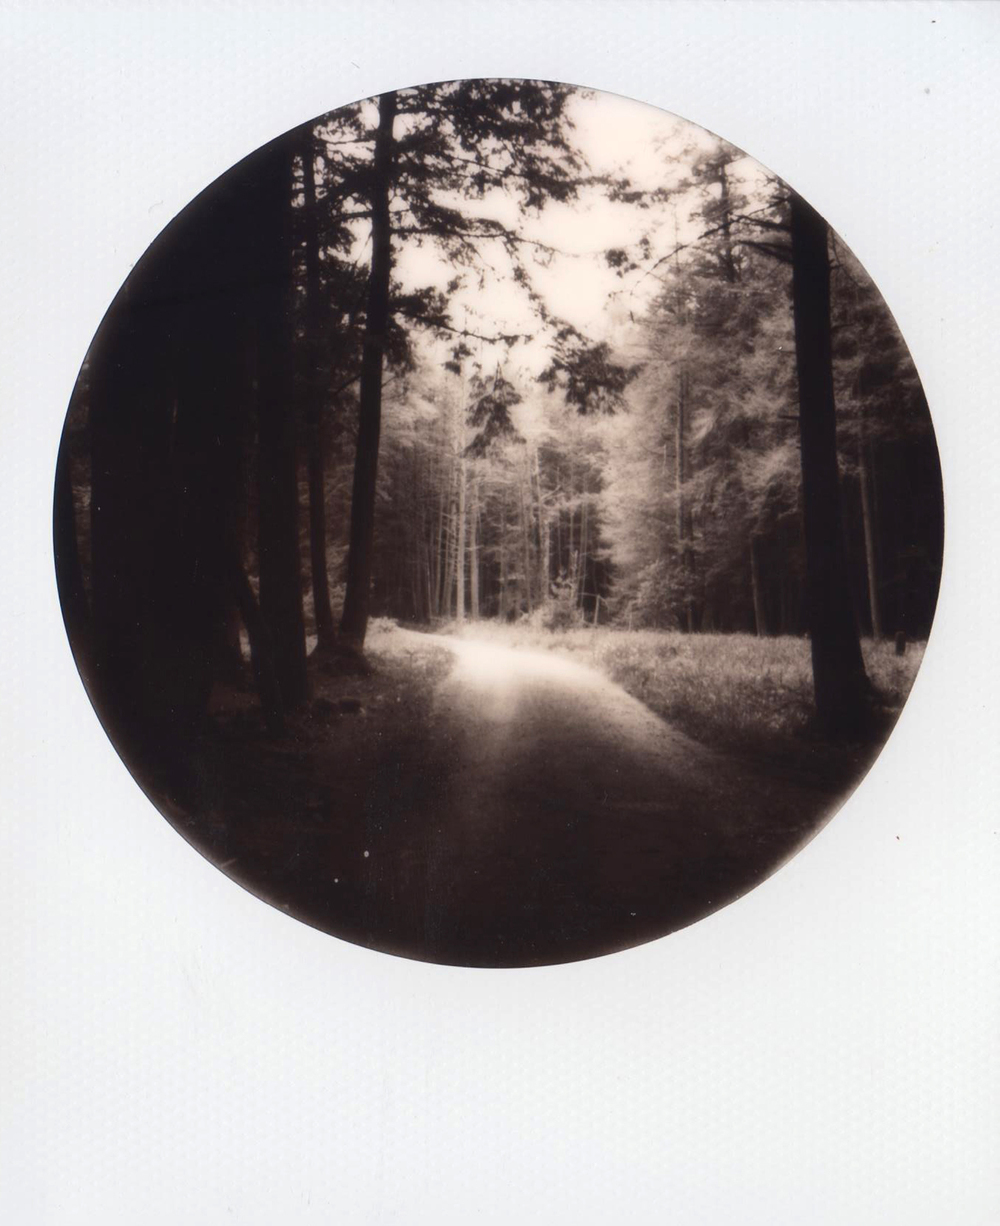 Pilgrimage | SX-70 Impossible Project Black & White 2.0 film | Abigail Crone